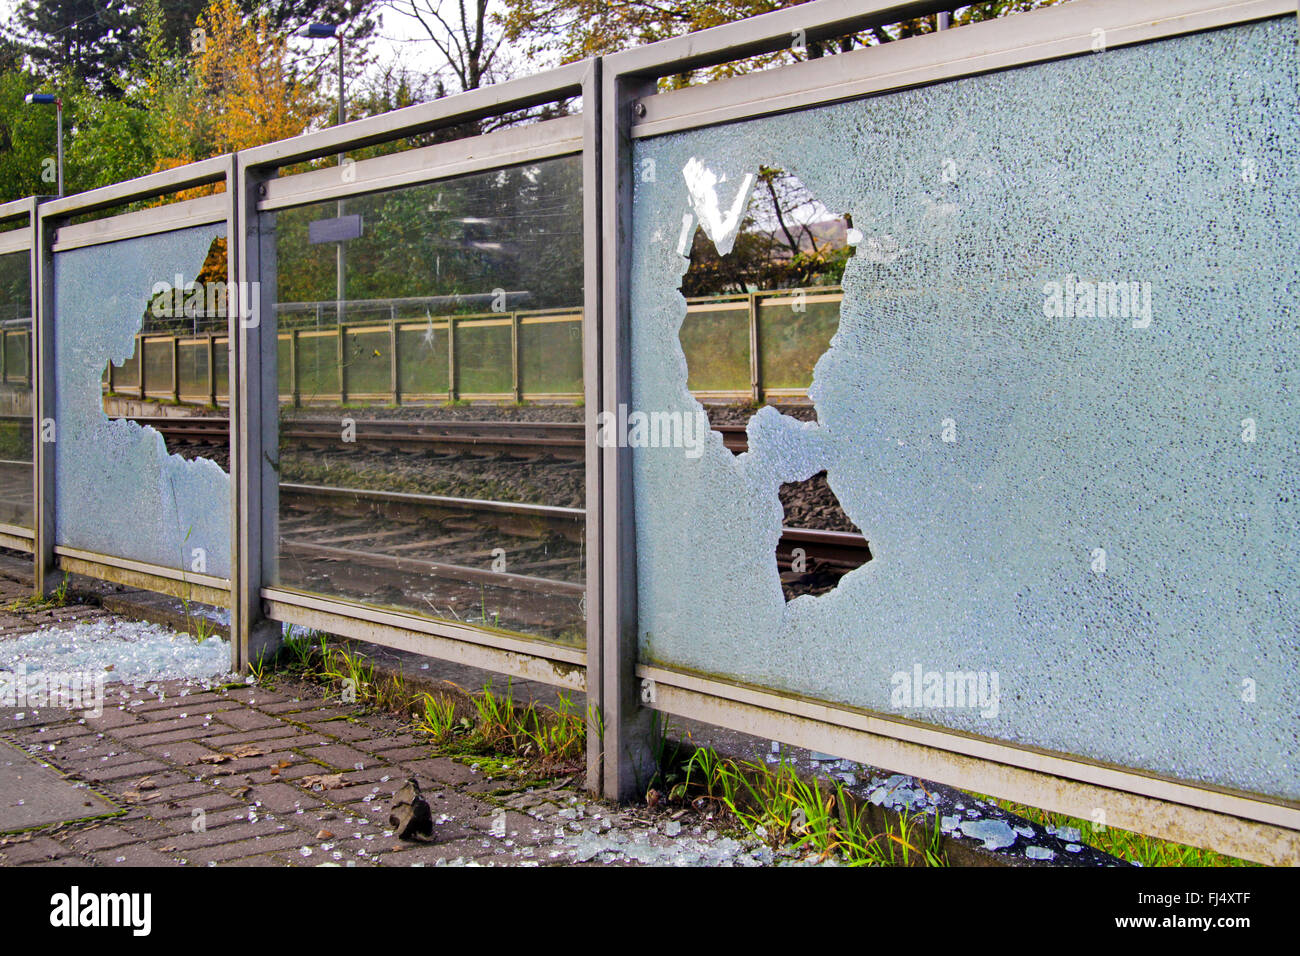 glass breakage caused by vandalism at a train station, Germany - Stock Image